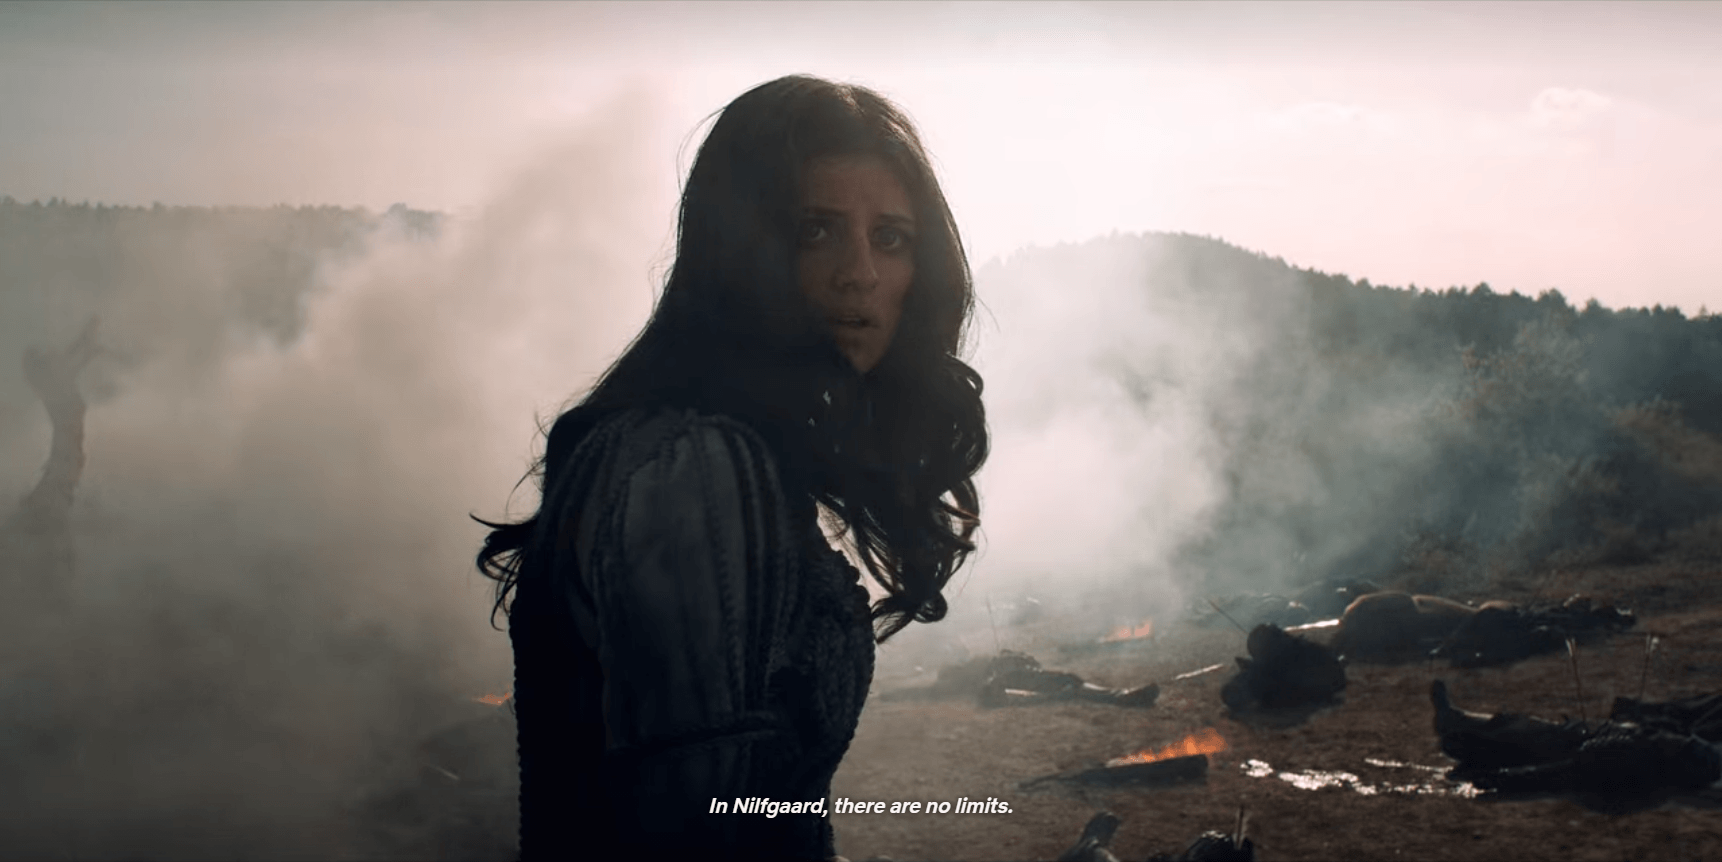 Image of The Witcher with closed captions.